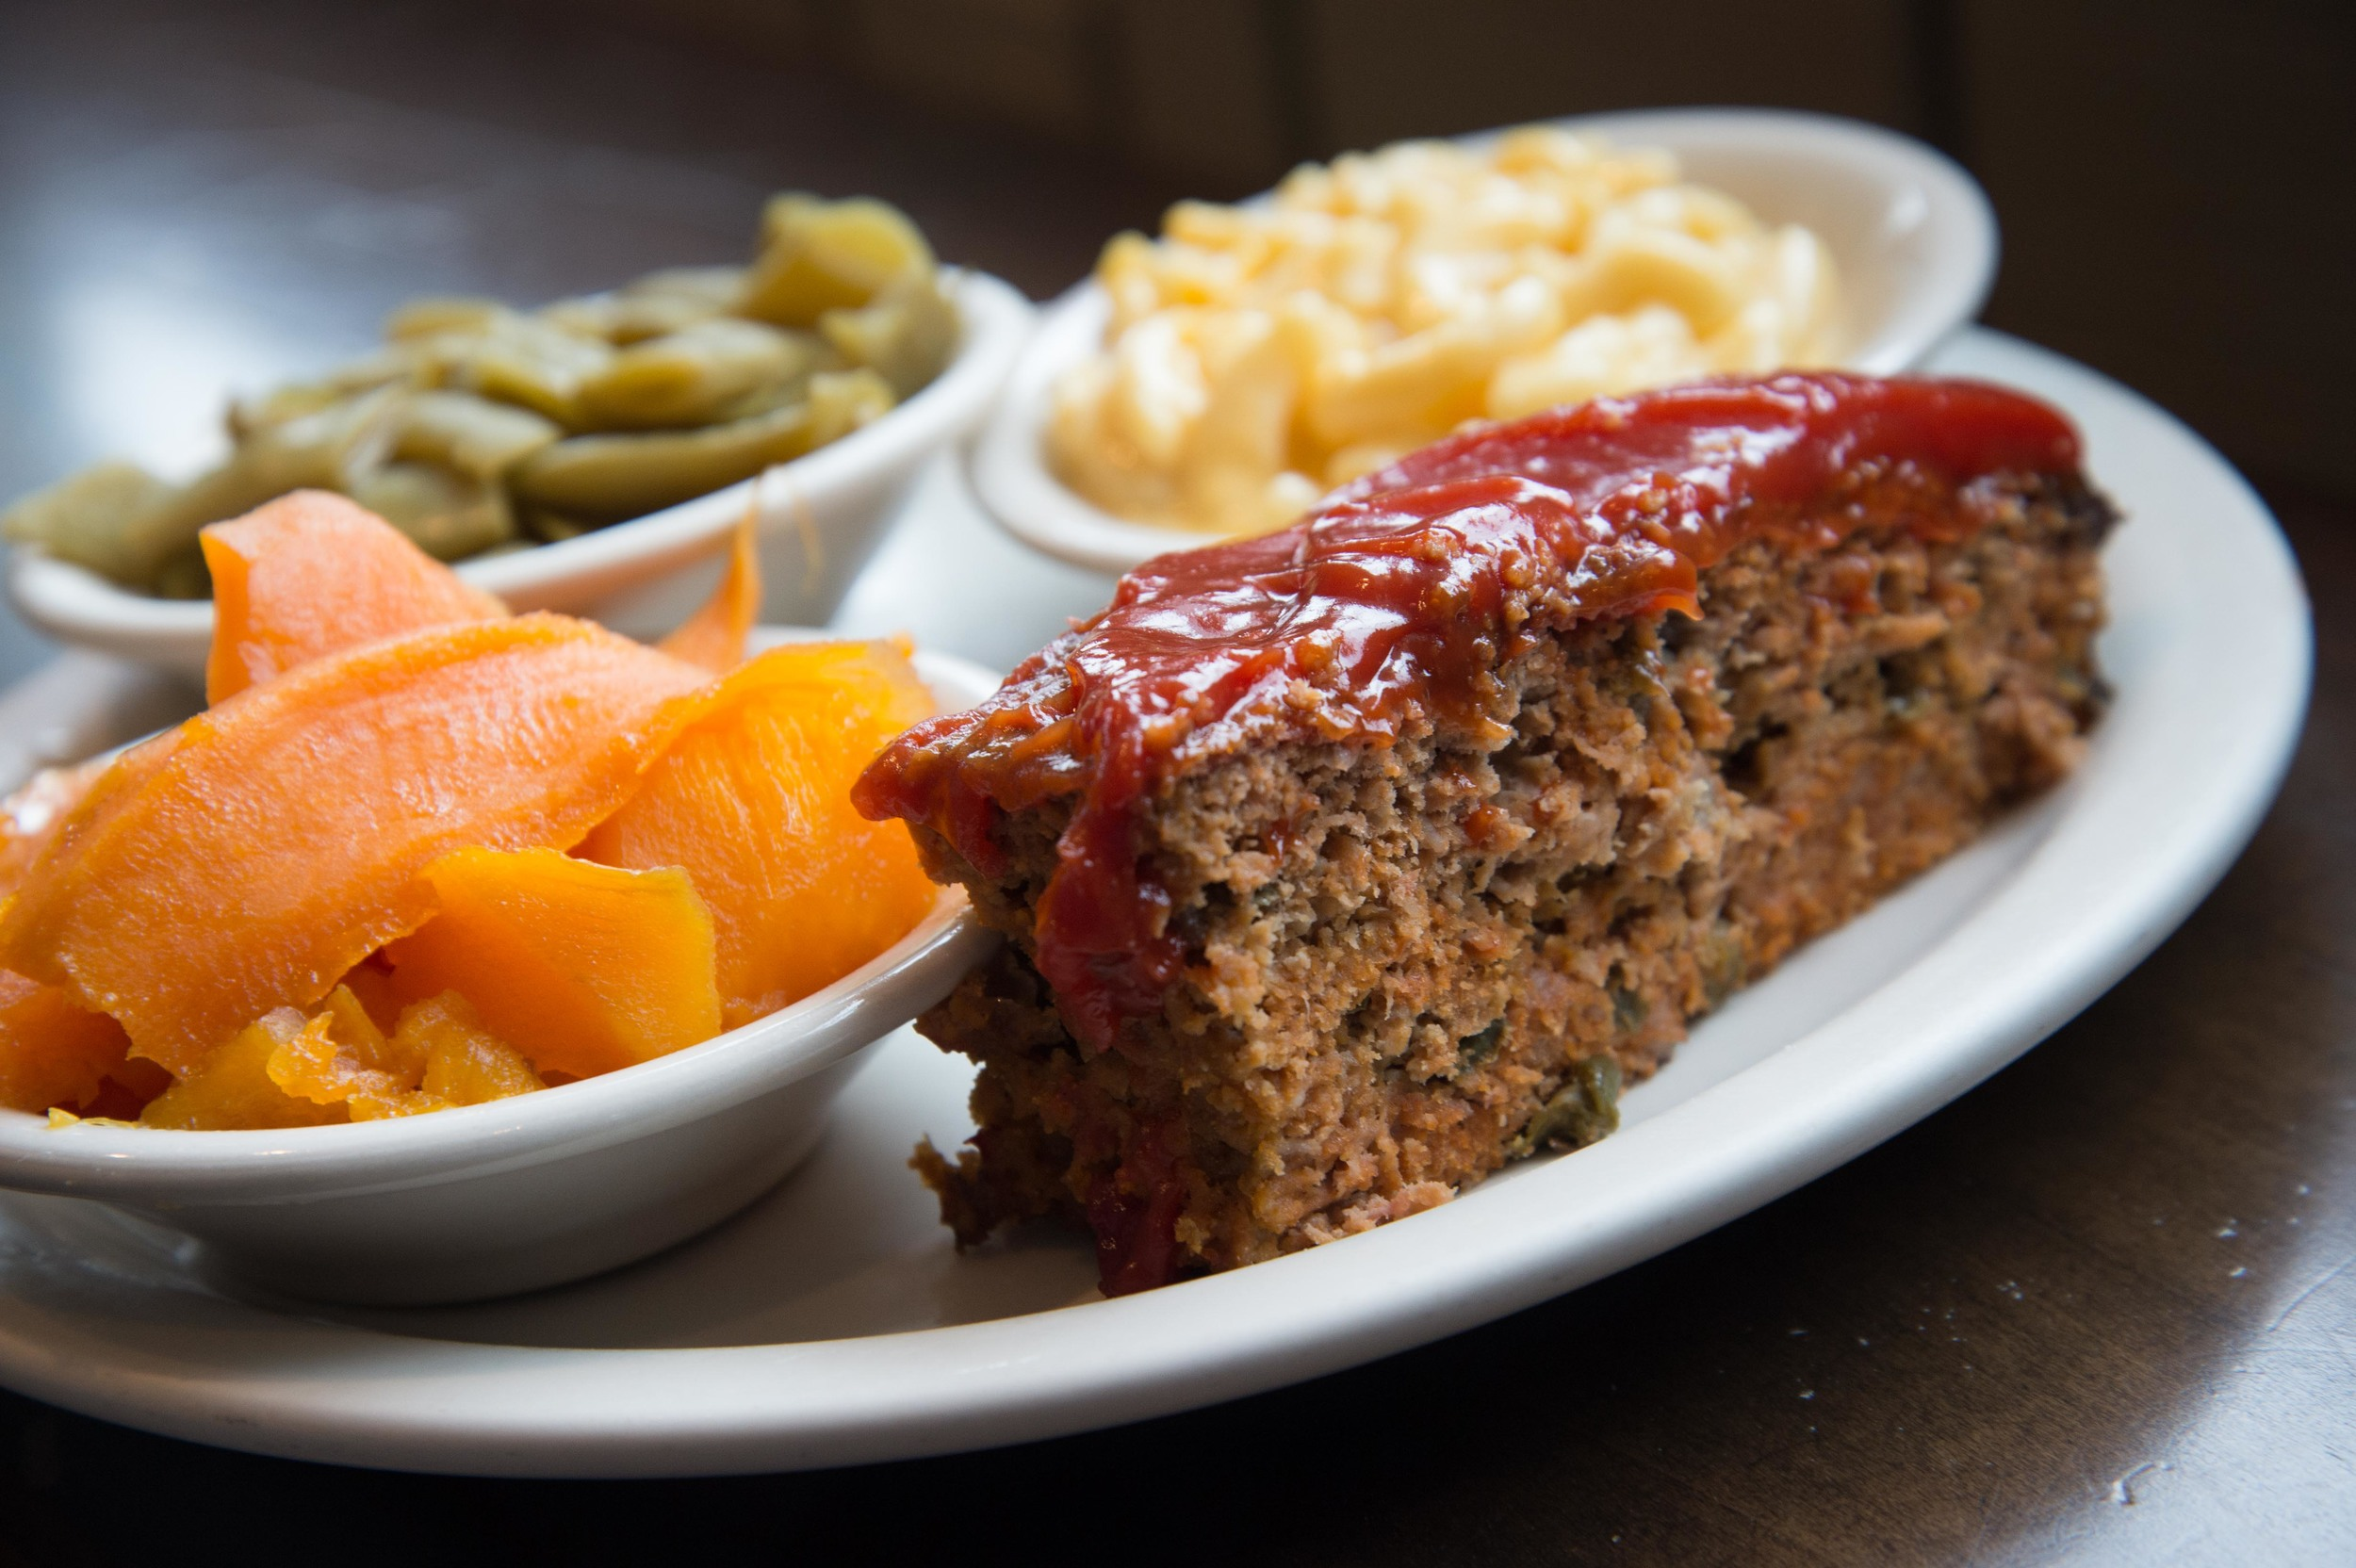 Vegetable Plate (meat loaf, green beans, sweet potatoes, and macaroni & cheese)